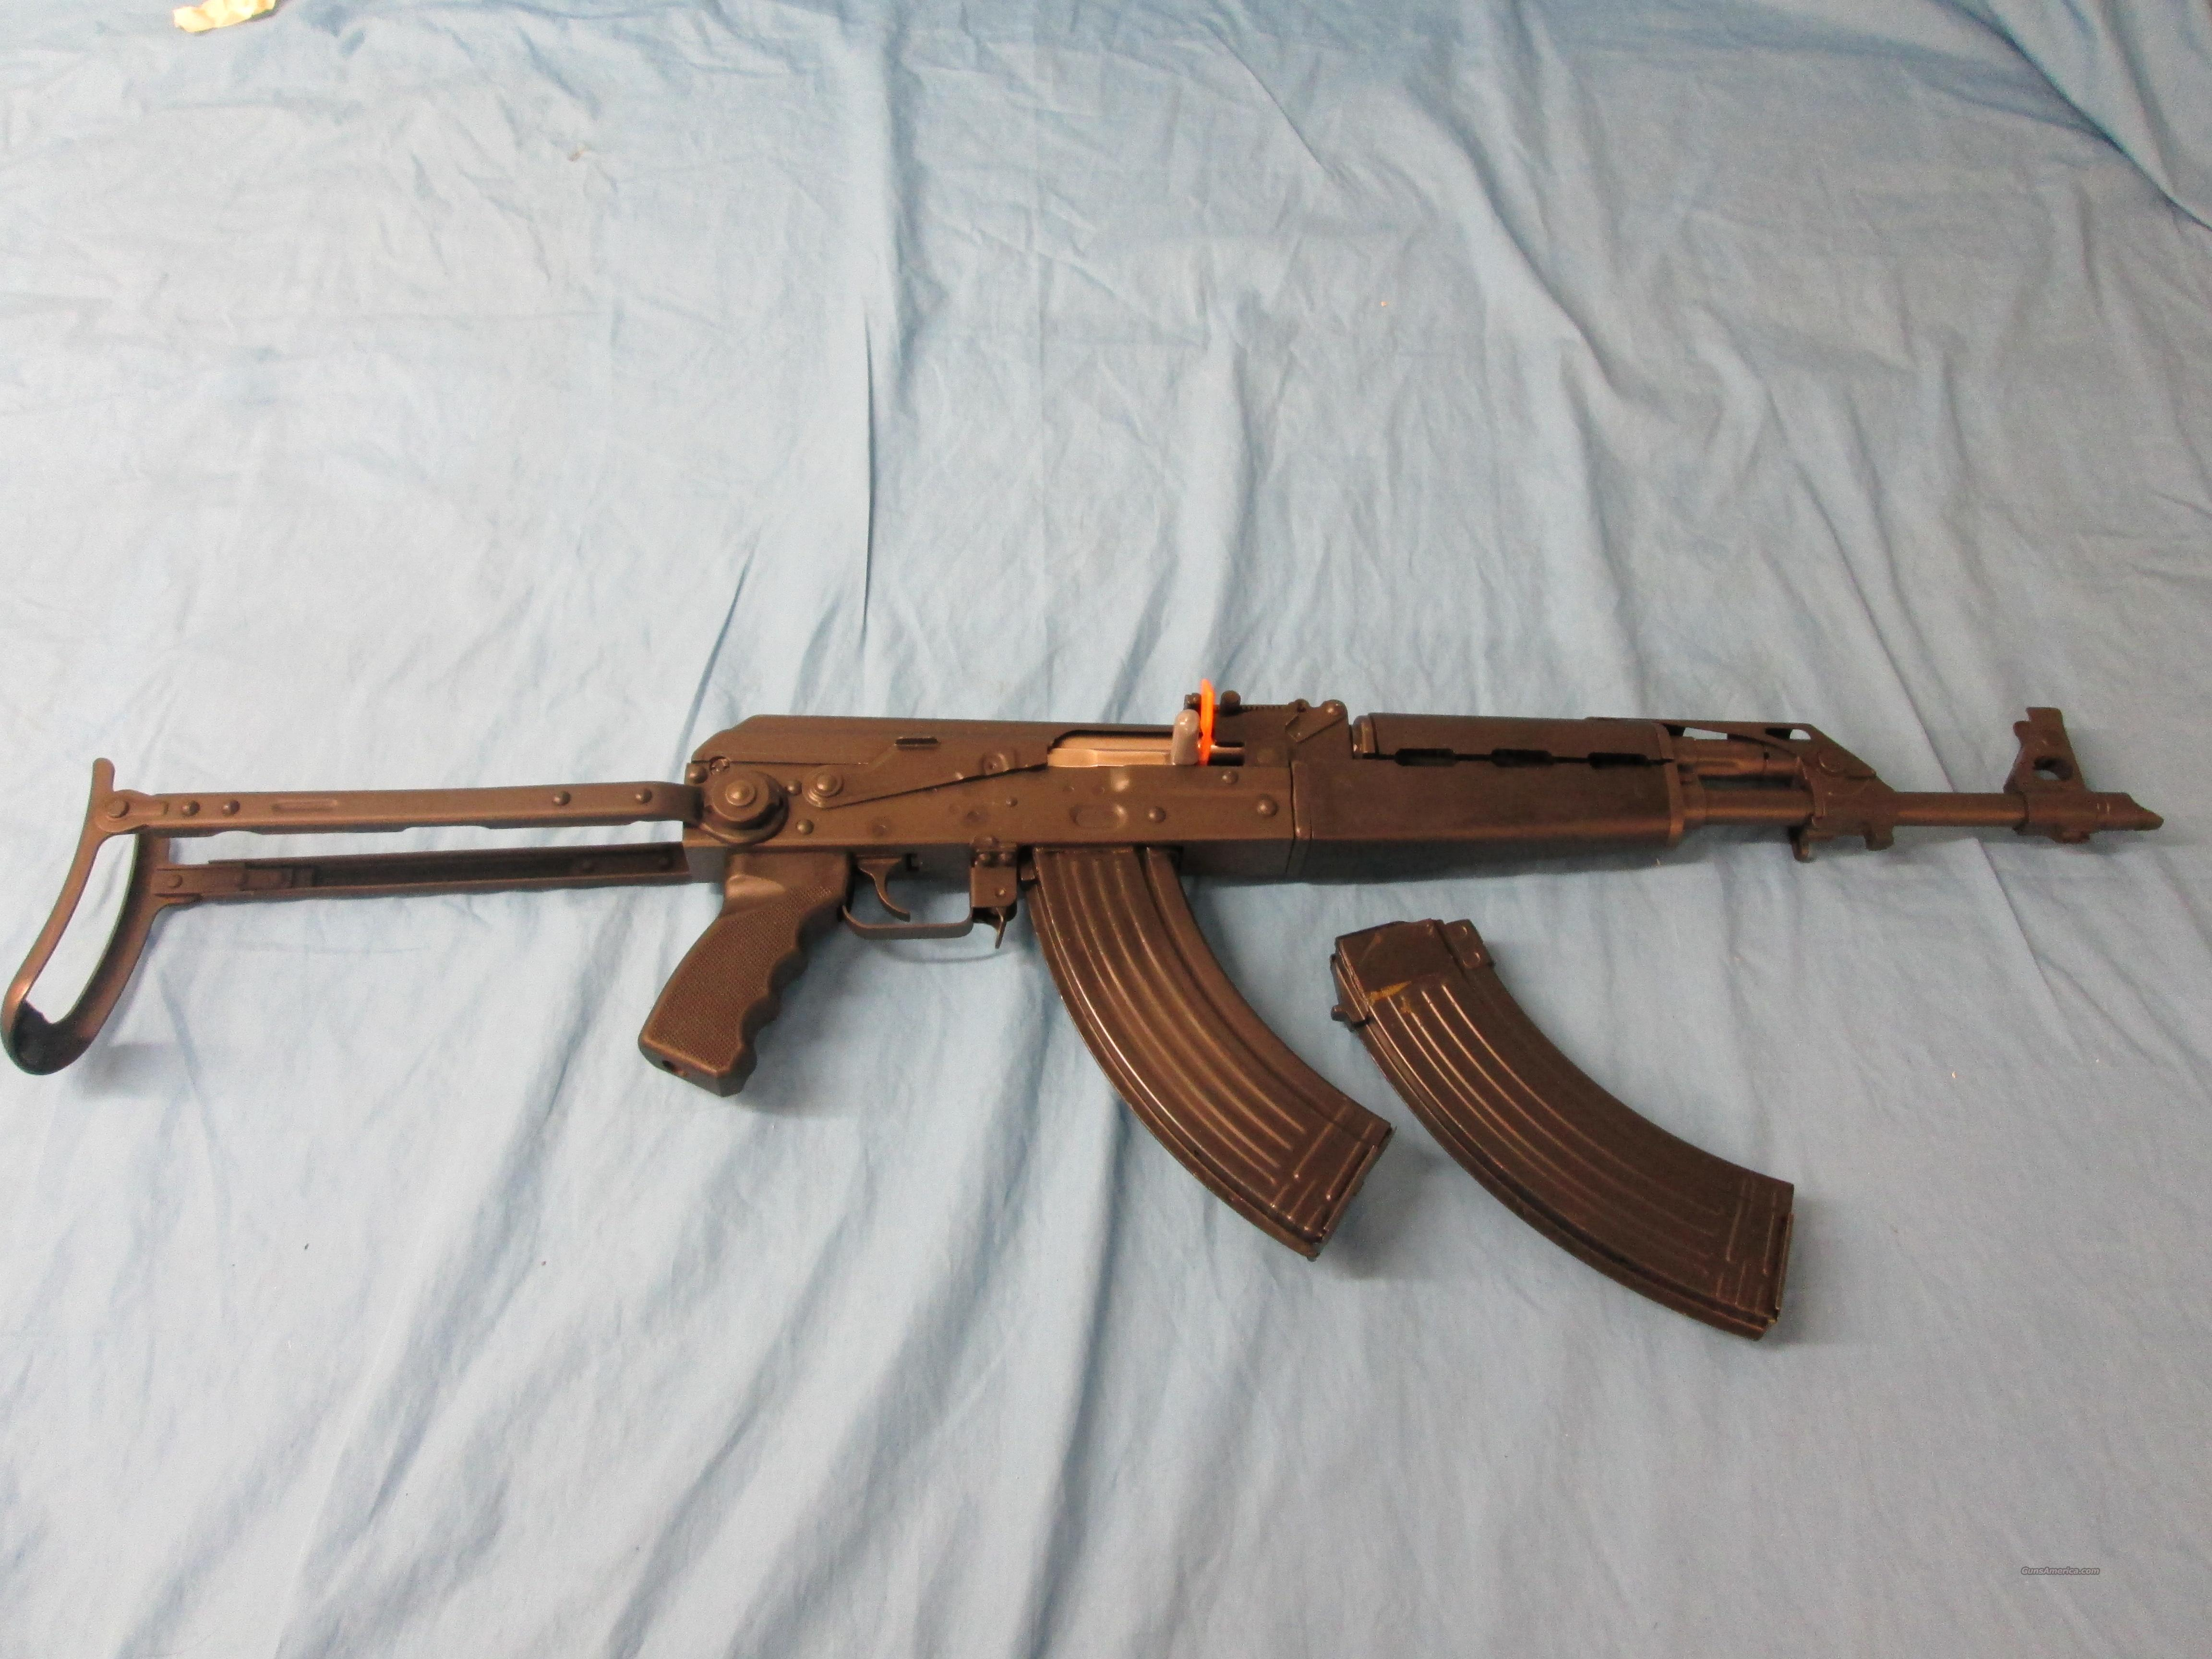 AK-47 YUGO M70 UNDERFOLDER AK47  Guns > Rifles > AK-47 Rifles (and copies) > Folding Stock